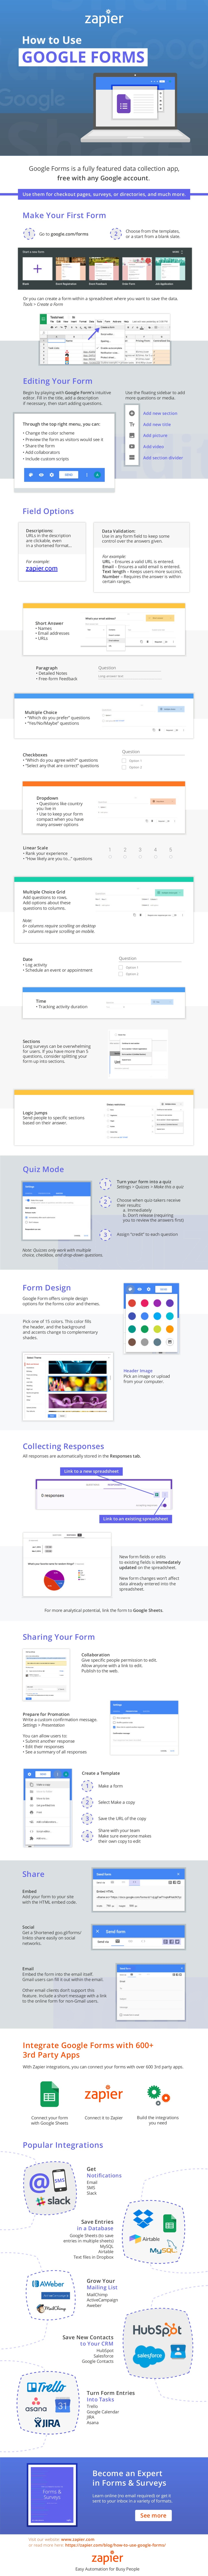 Google Forms Guide: Everything You Need to Make Great Forms for Free - infographic